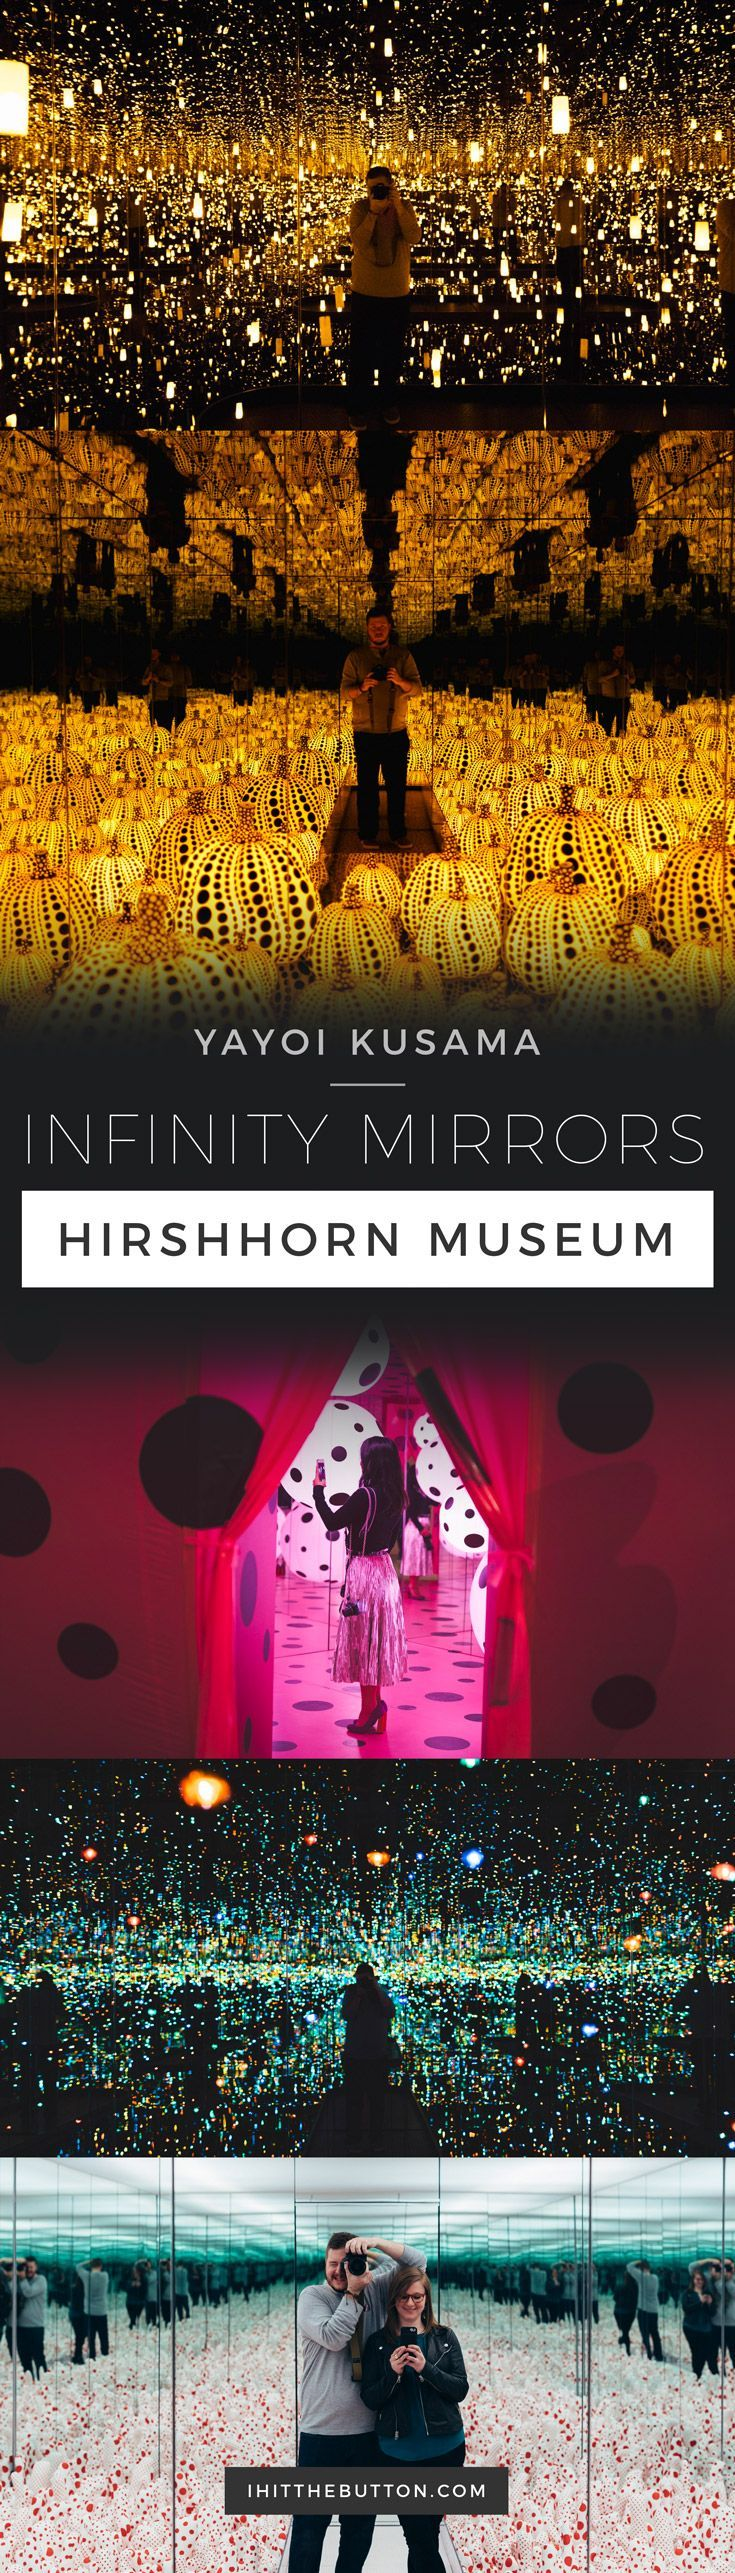 Yayoi Kusama Infinity Mirrors at the Hirshhorn in Washington DC // http://ihitthebutton.com